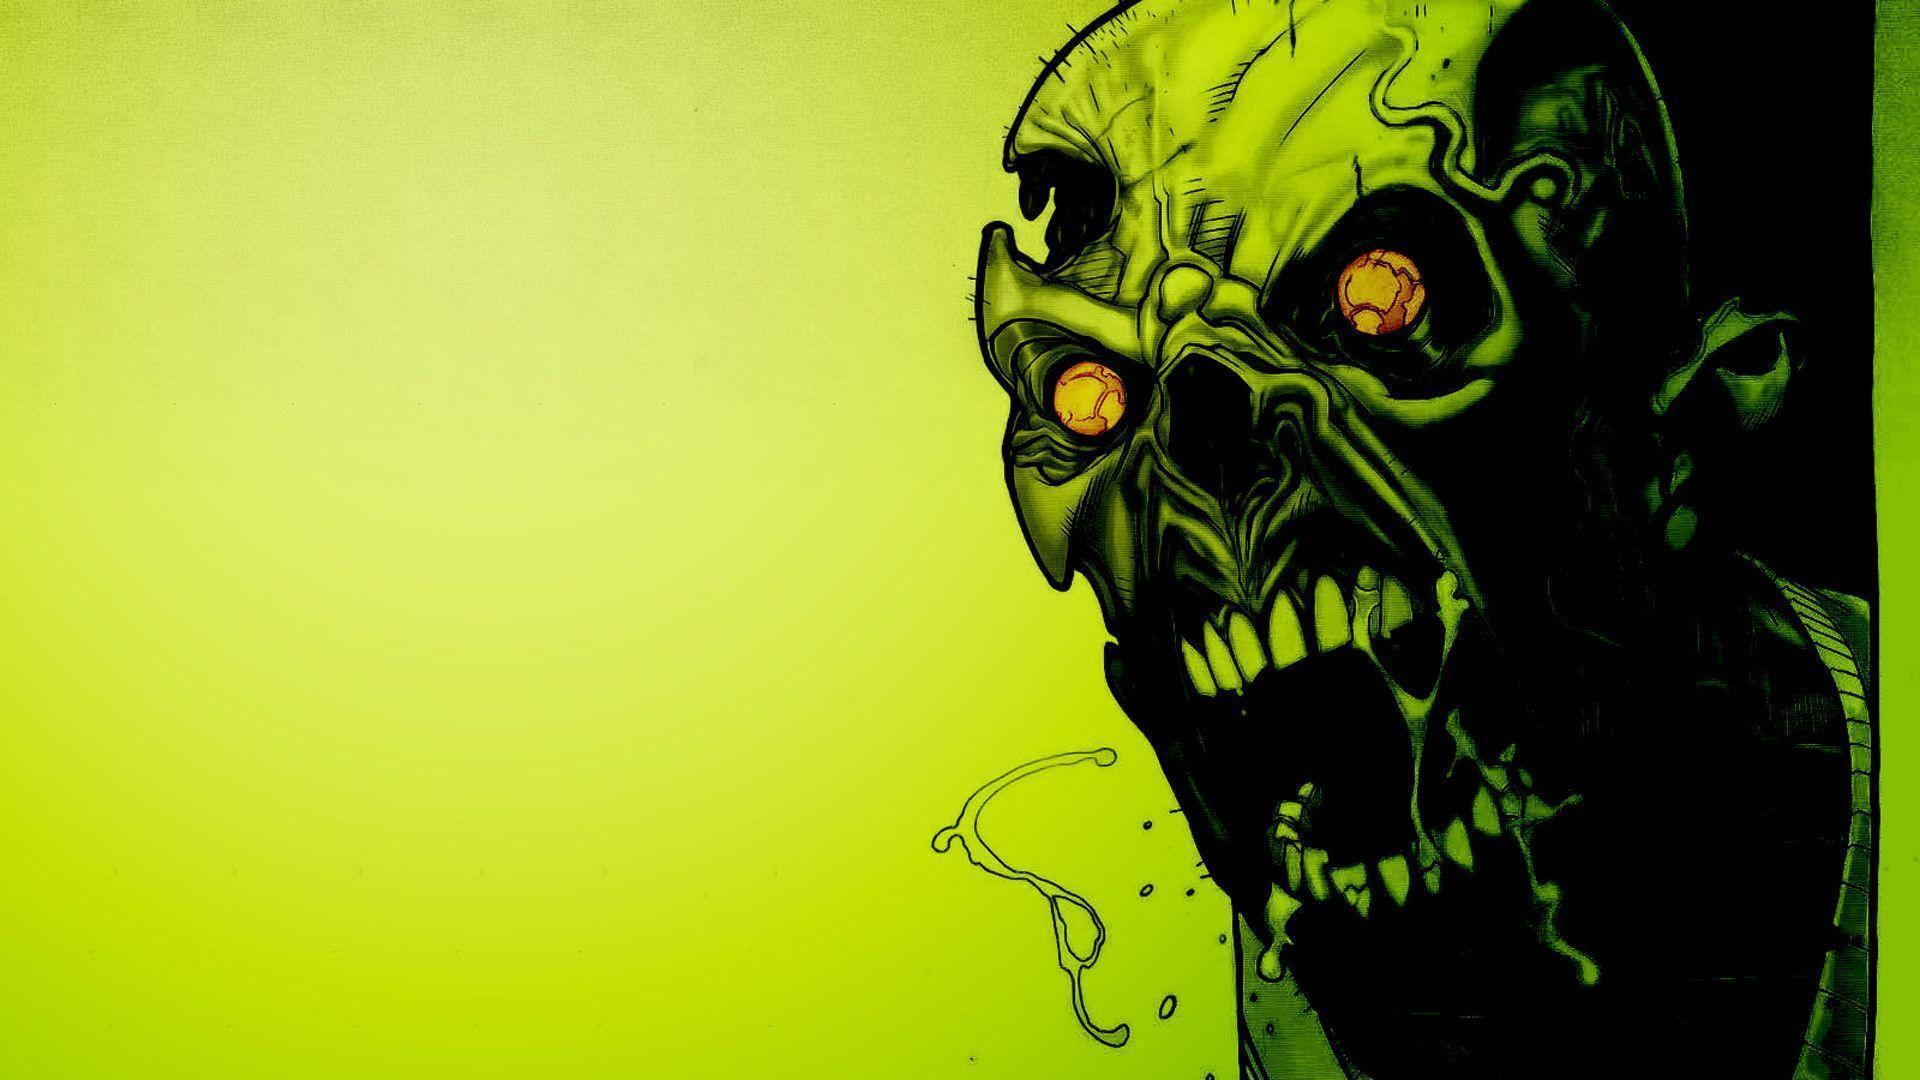 Zombie Wallpapers For Rooms 18142 Full HD Wallpapers Desktop